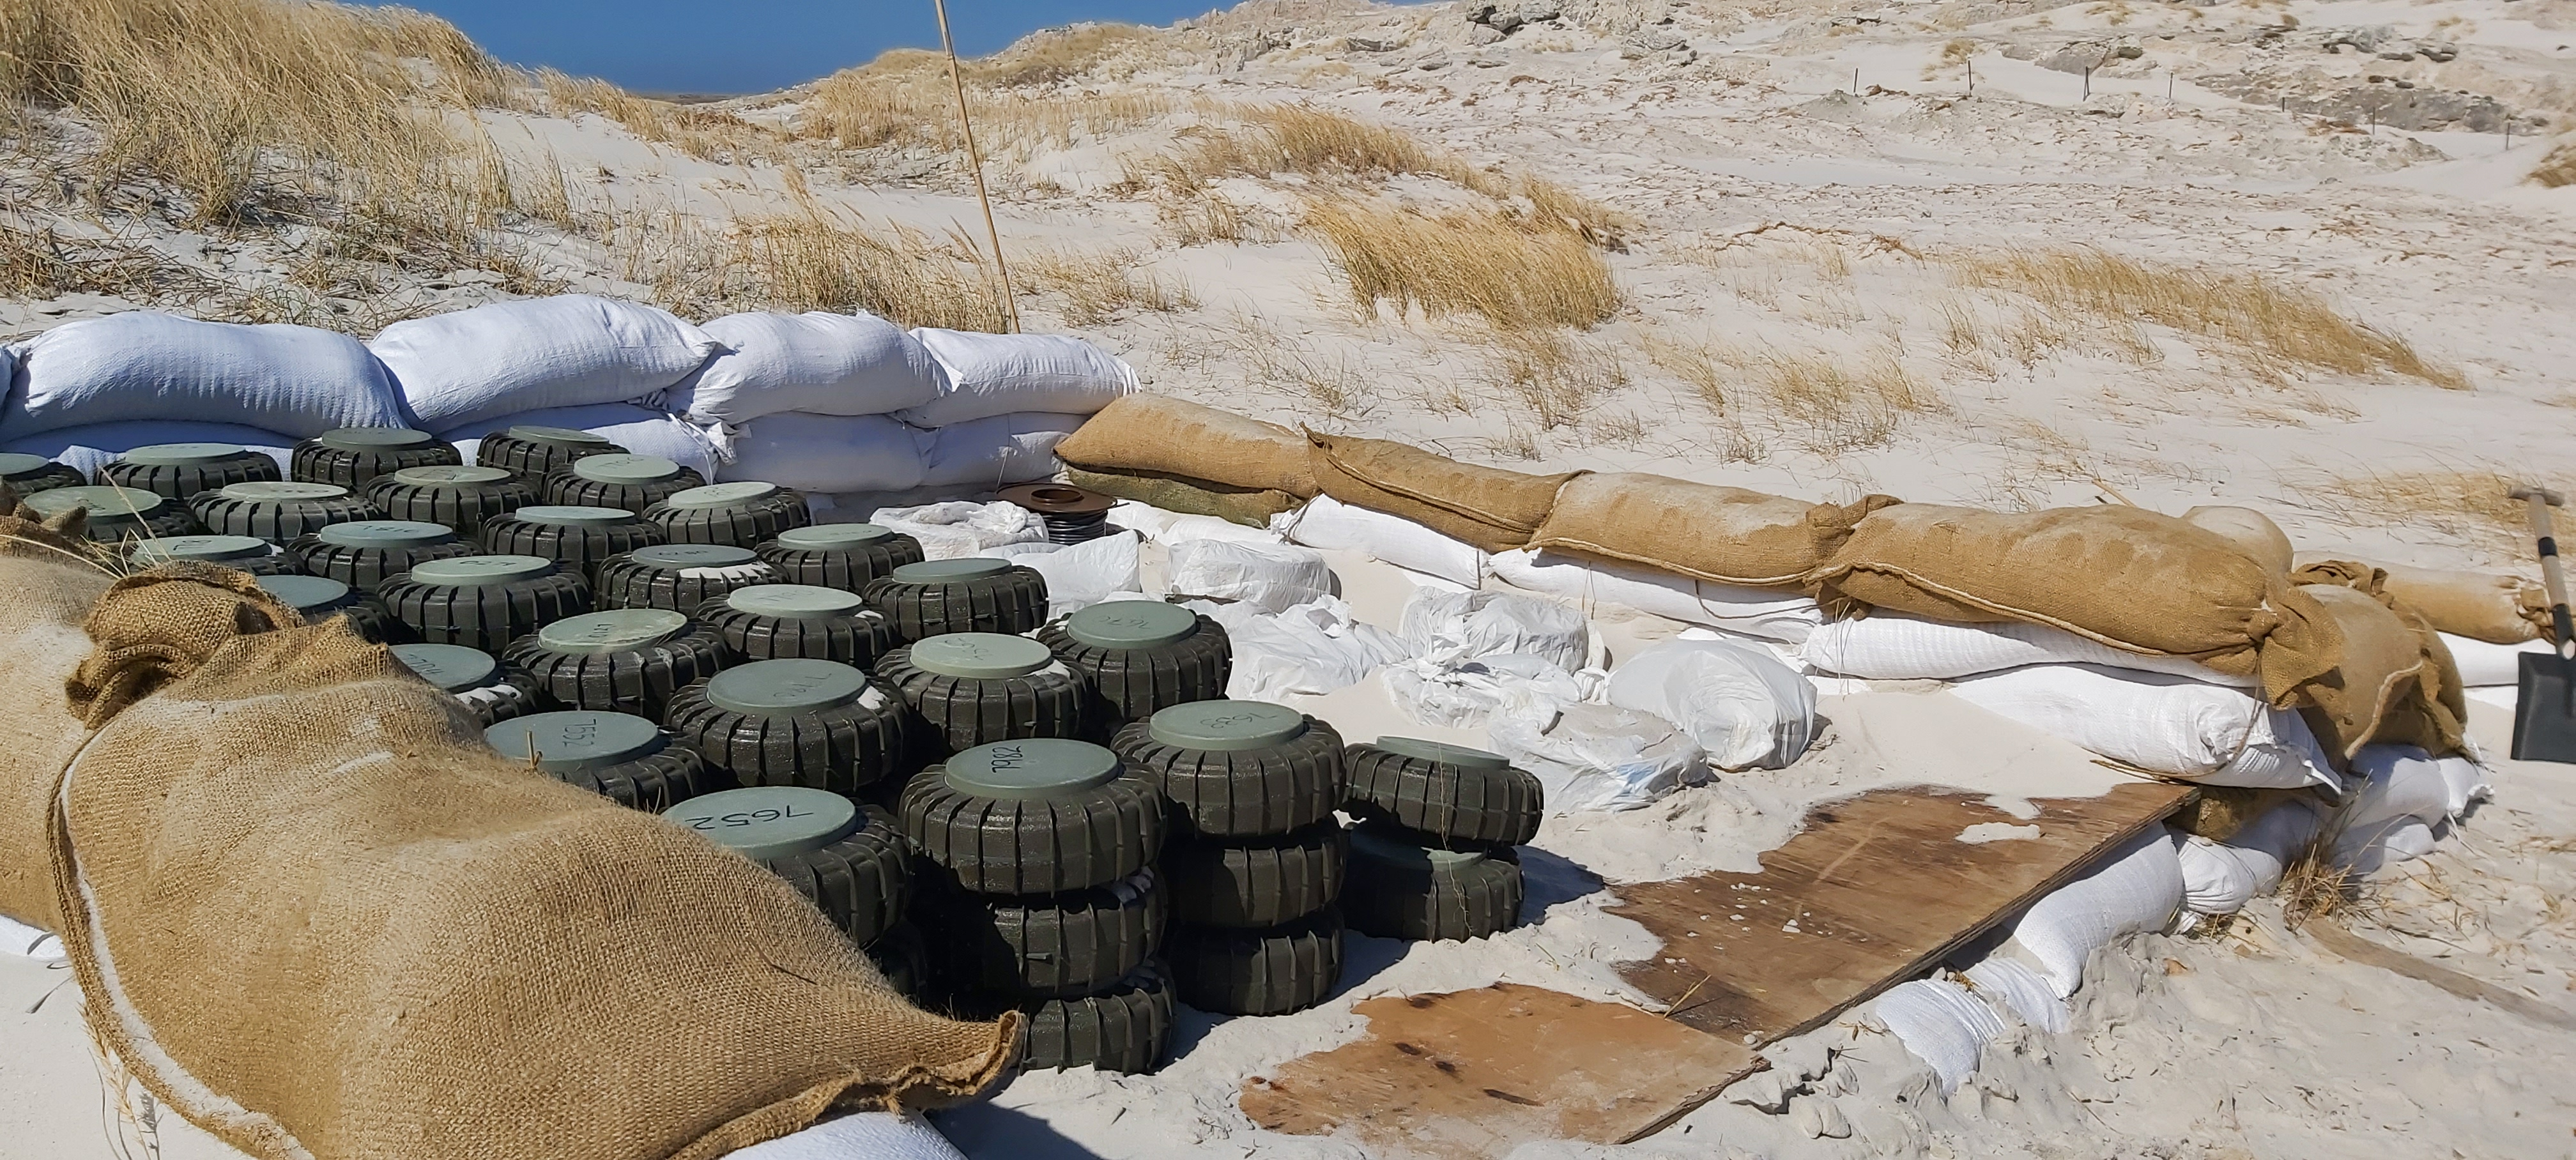 The History of Land Mines in The Falklands